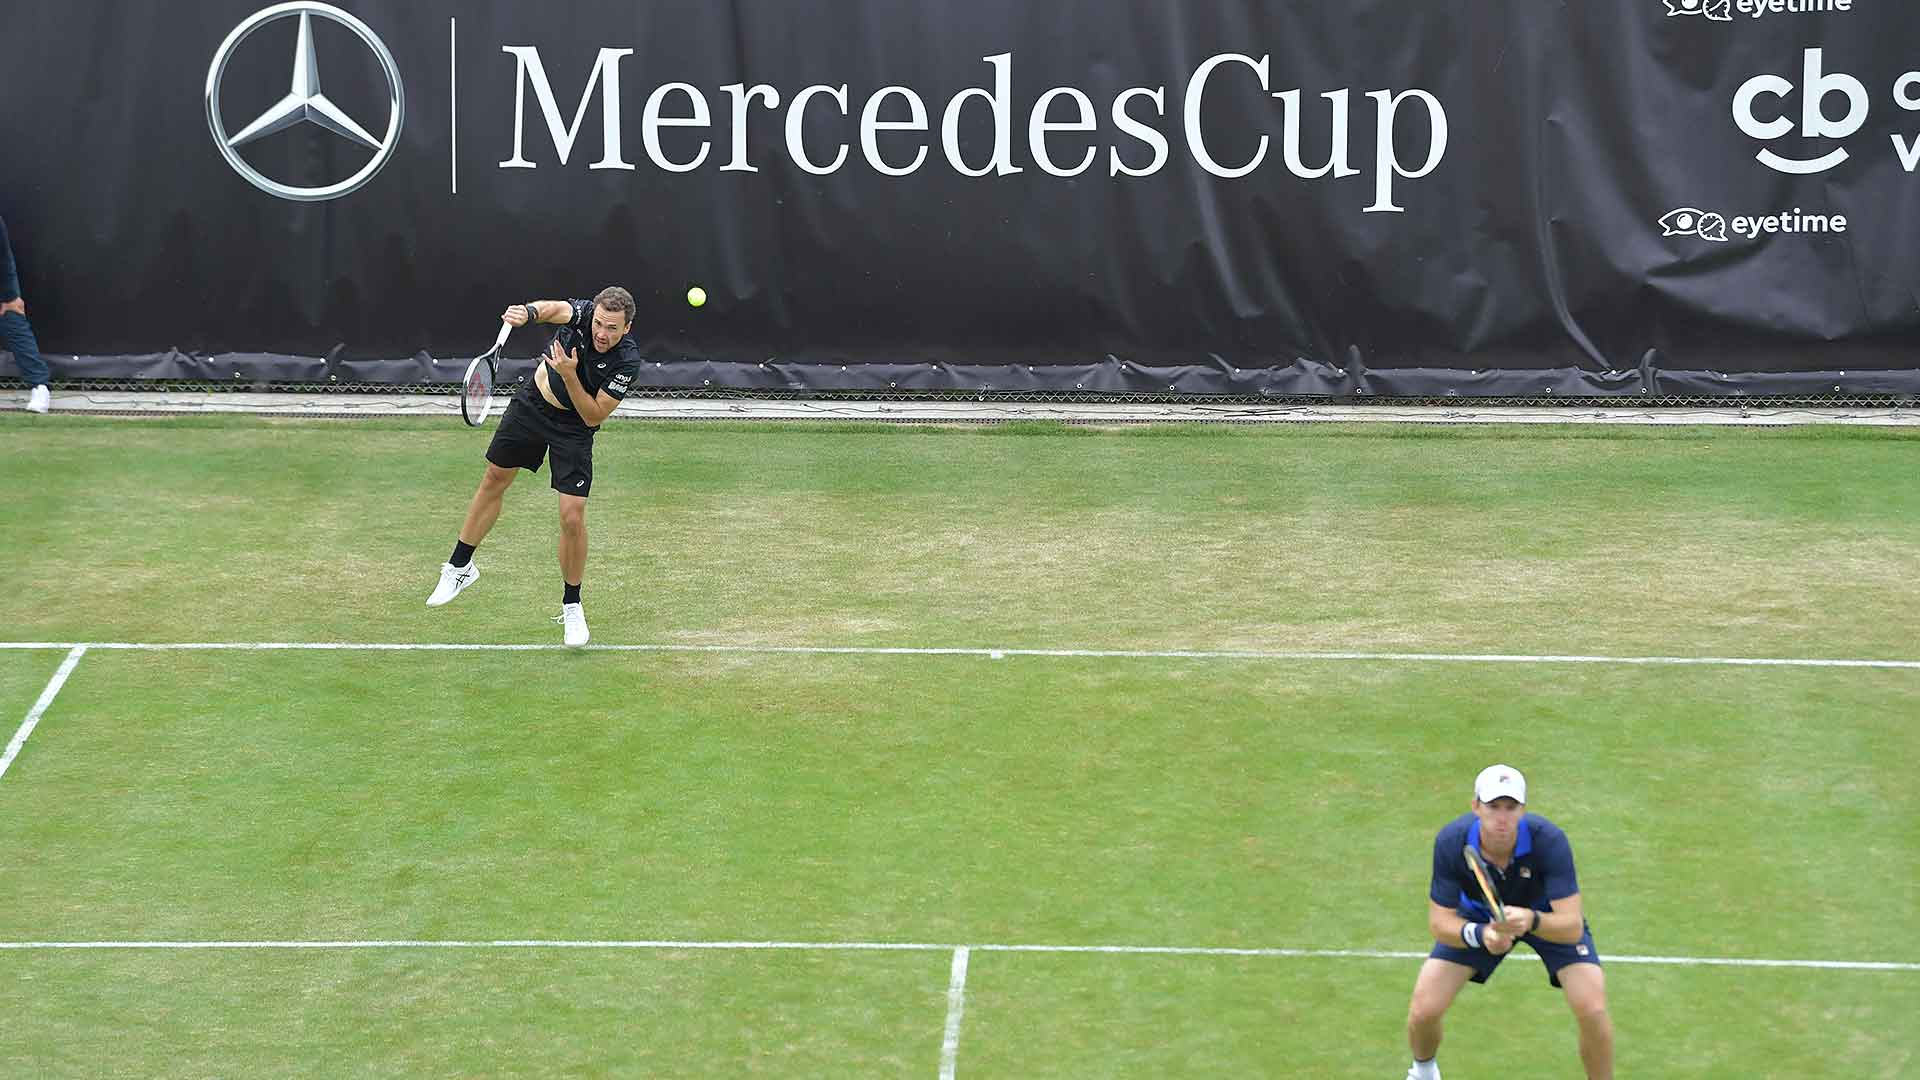 Bruno Soares and John Peers compete at the MercedesCup in Stuttgart